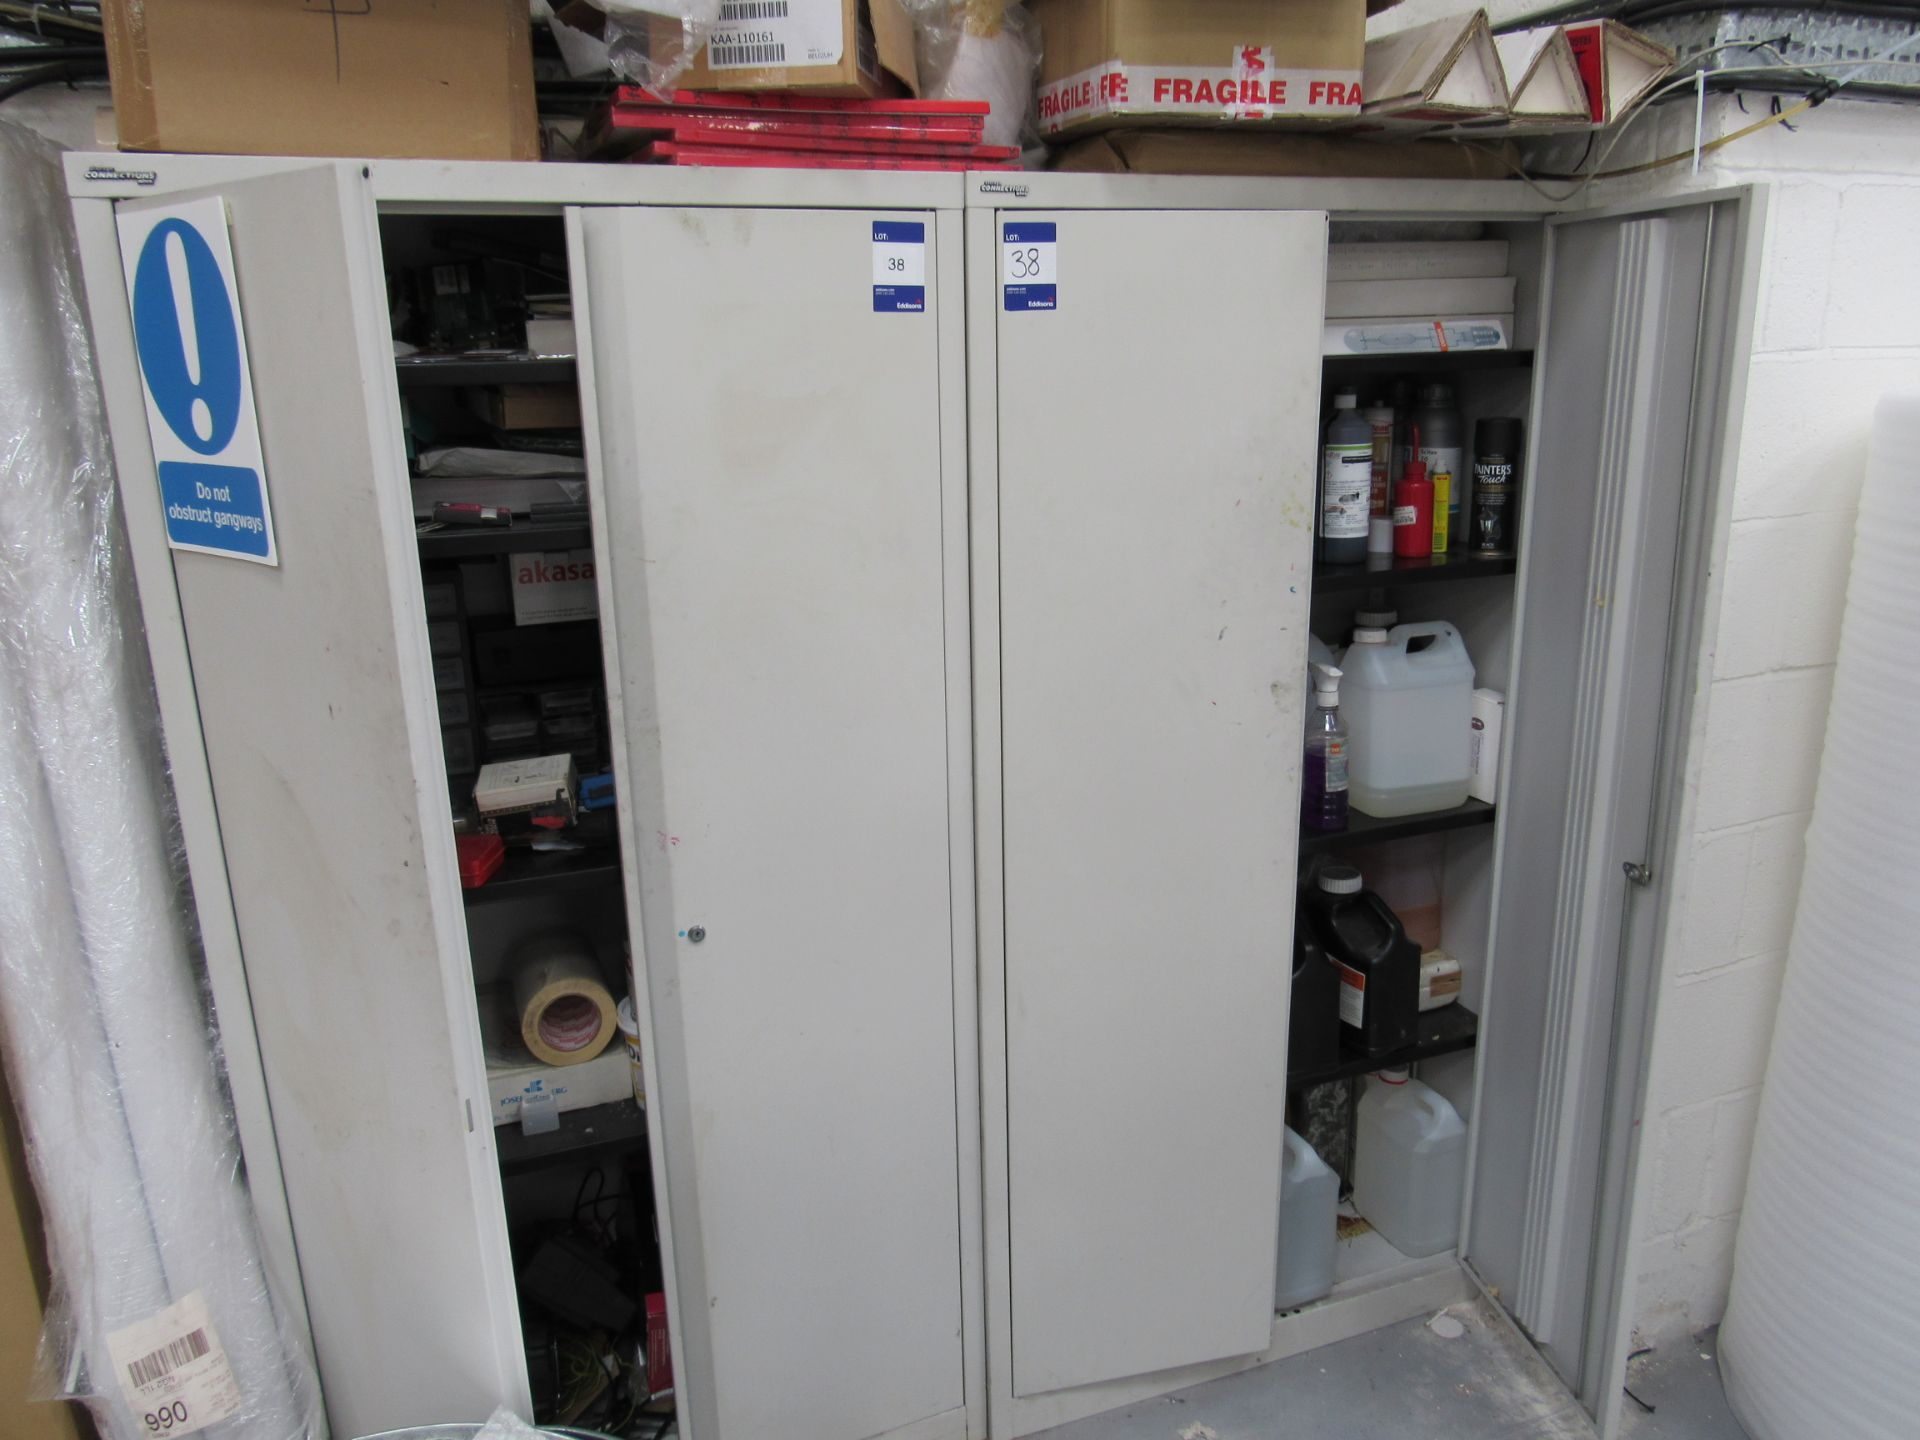 2 Steel Cabinets and Contents